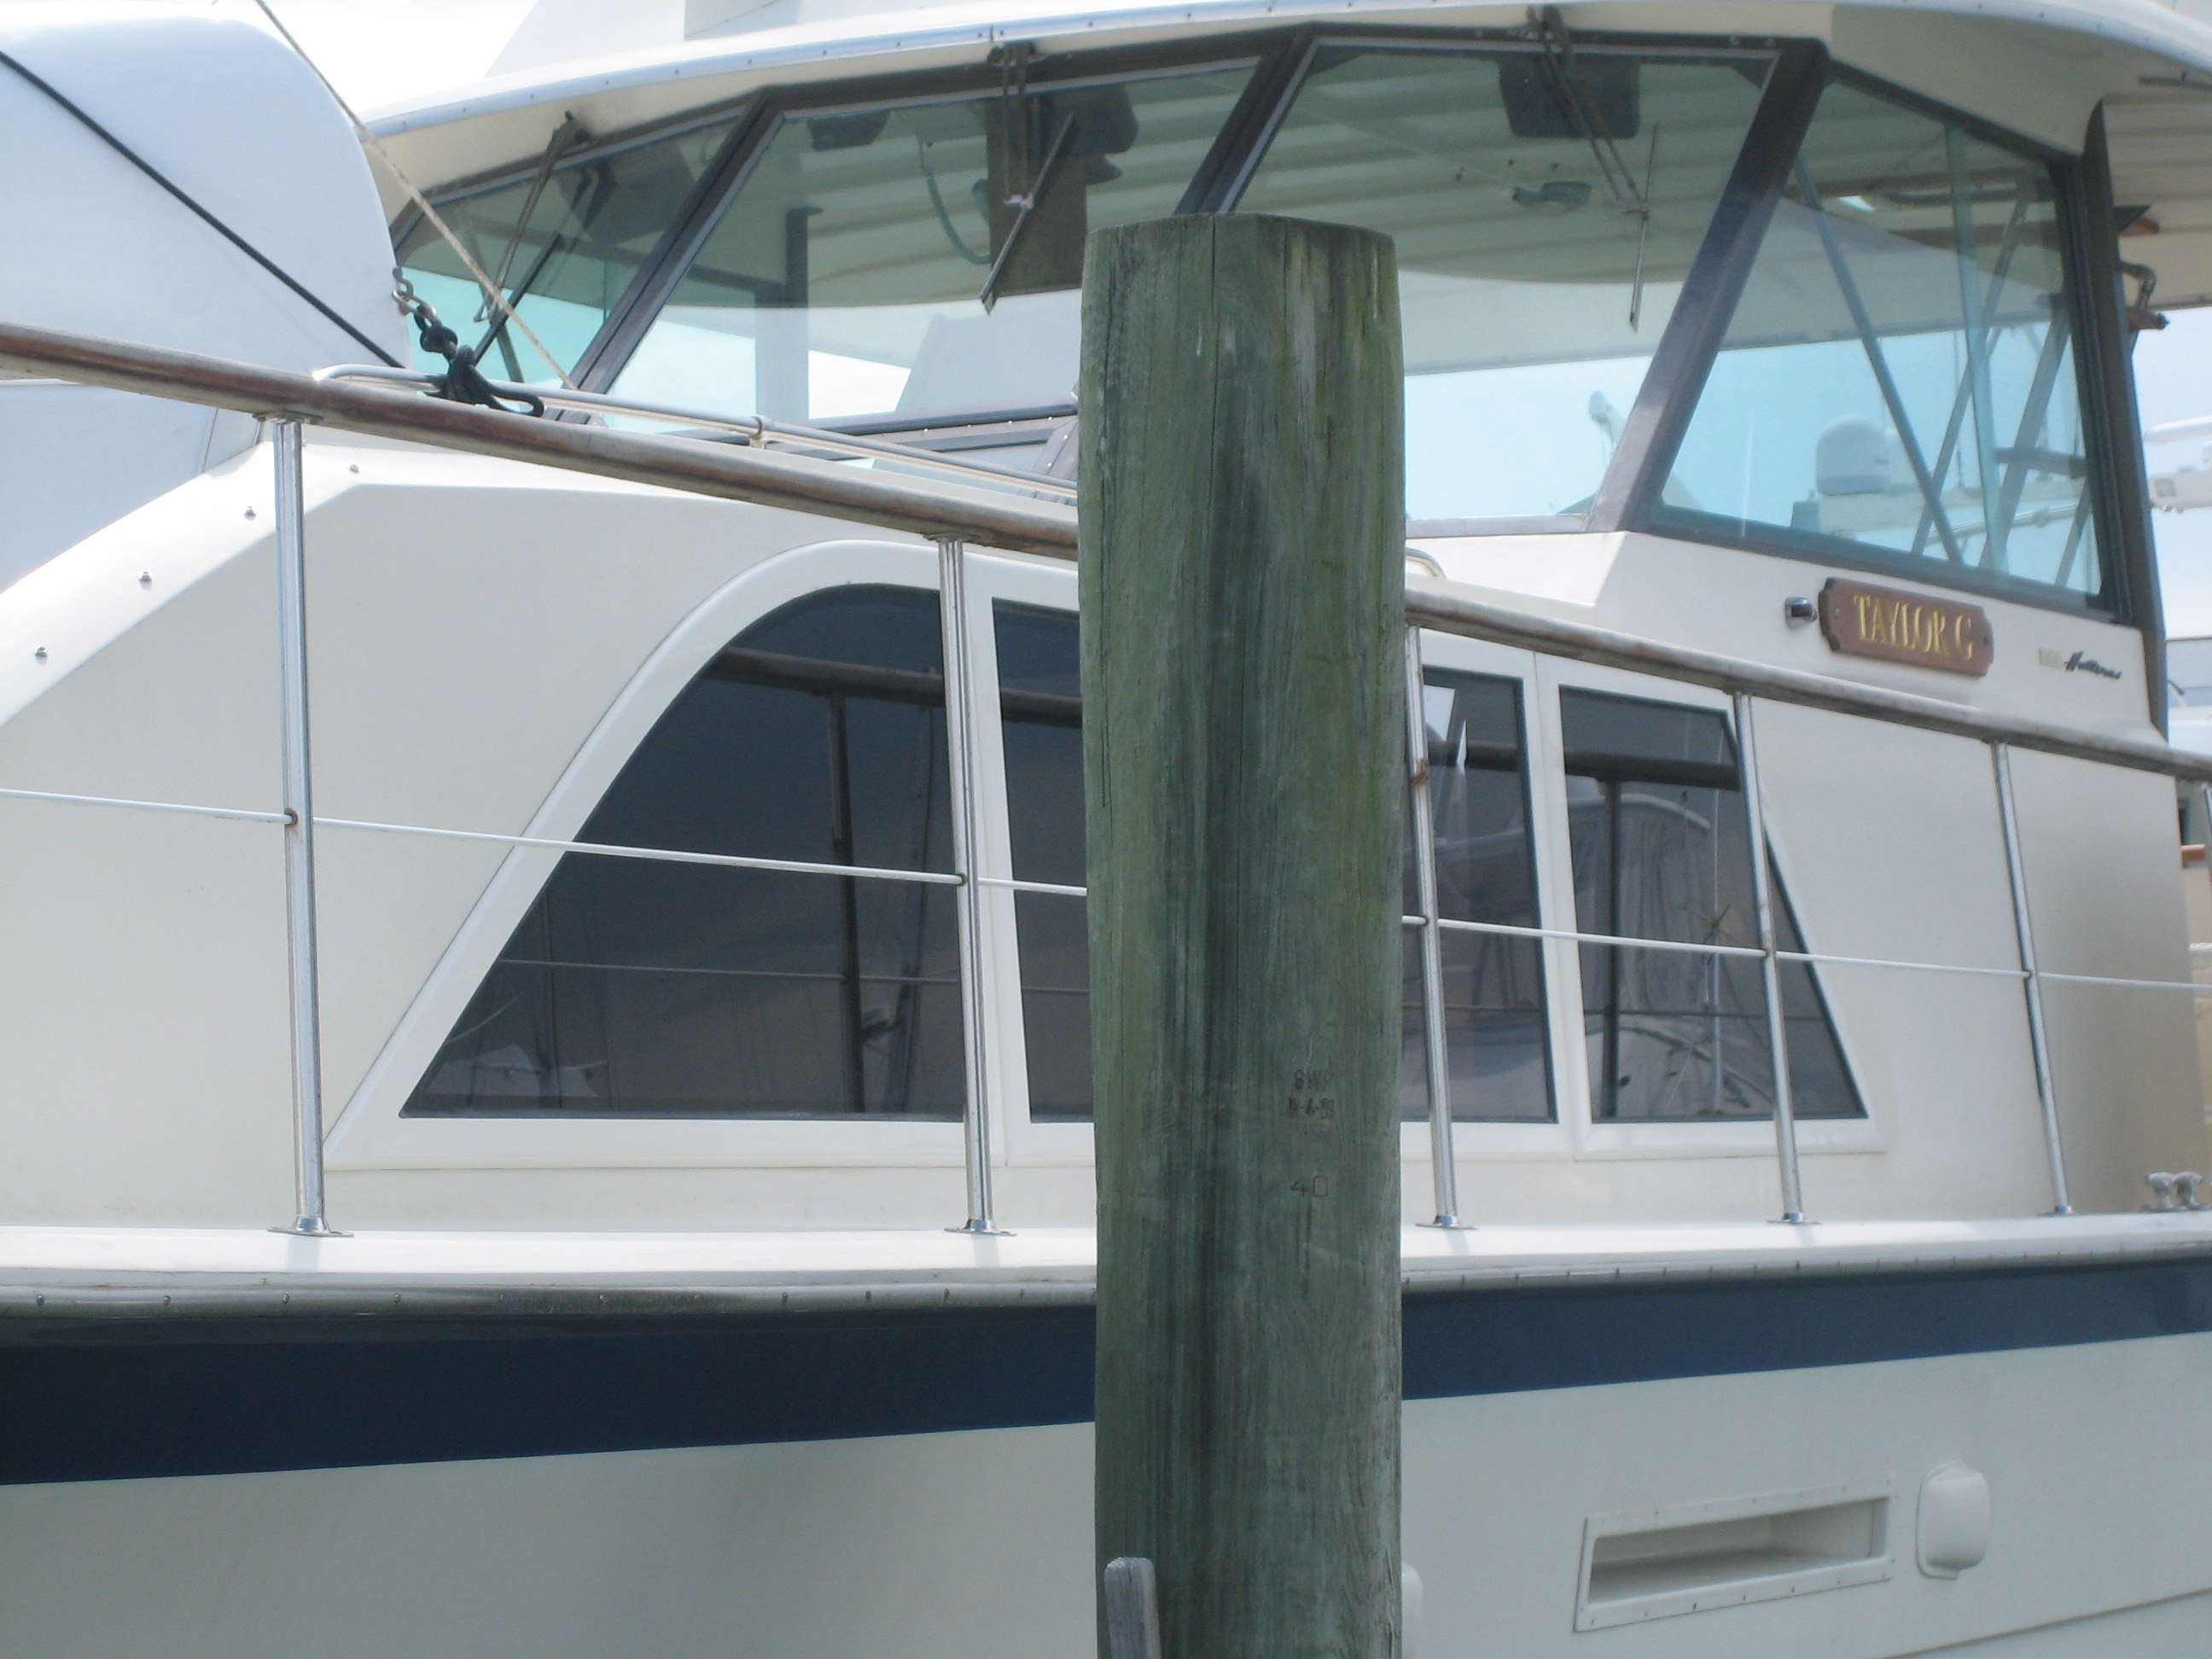 Hatteras double cabin 43 lookout boat window frames for Fiberglass replacement windows